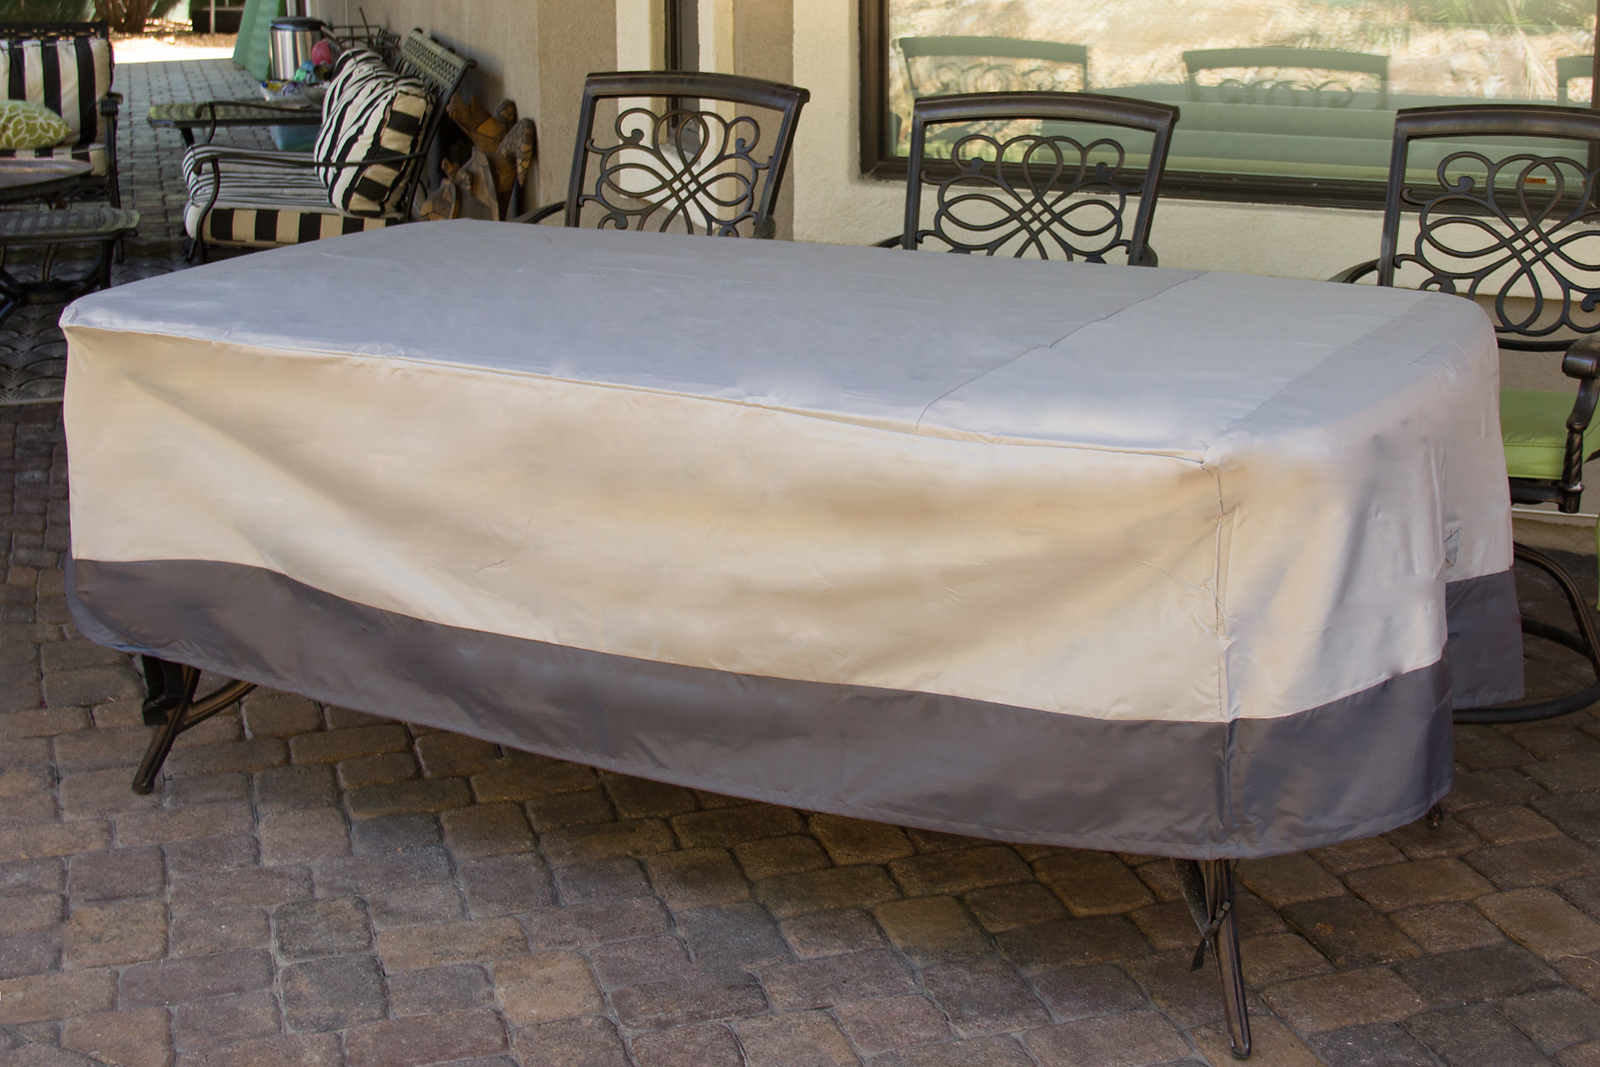 Dining Table Weatherproof Outdoor Furniture Patio Cover Ebay